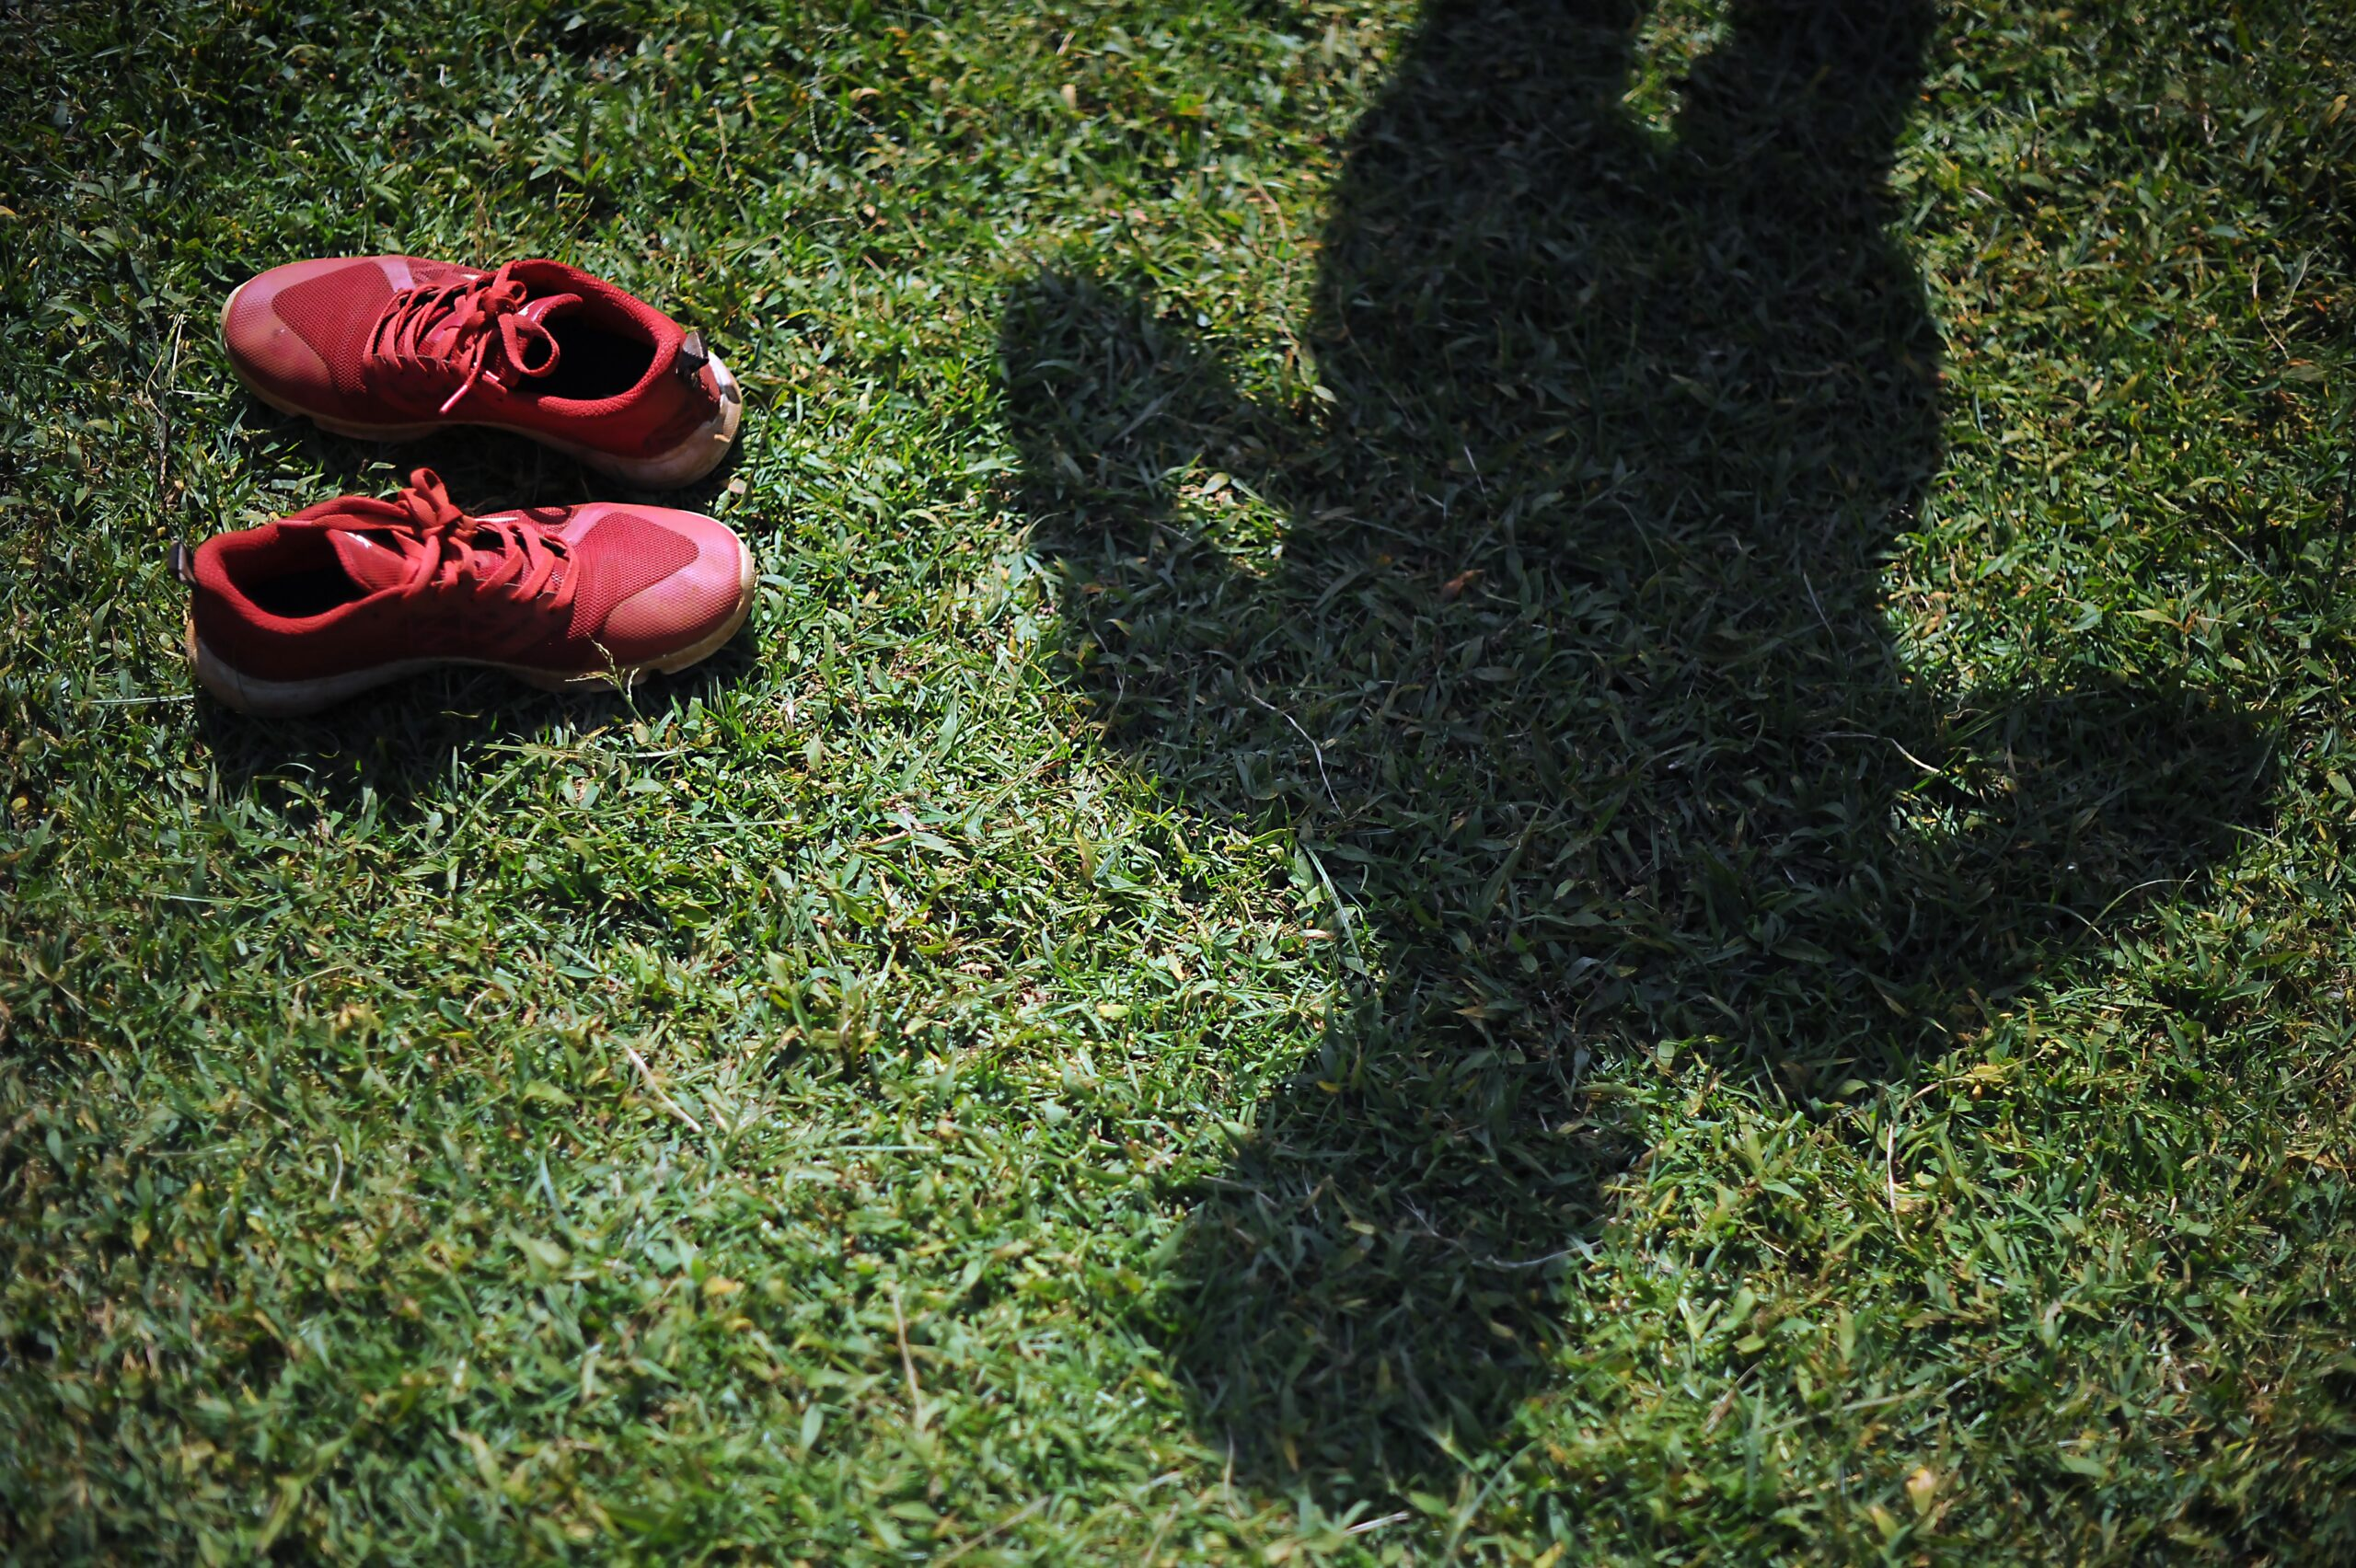 Shadow faces grass with a pair of red sneakers on the side